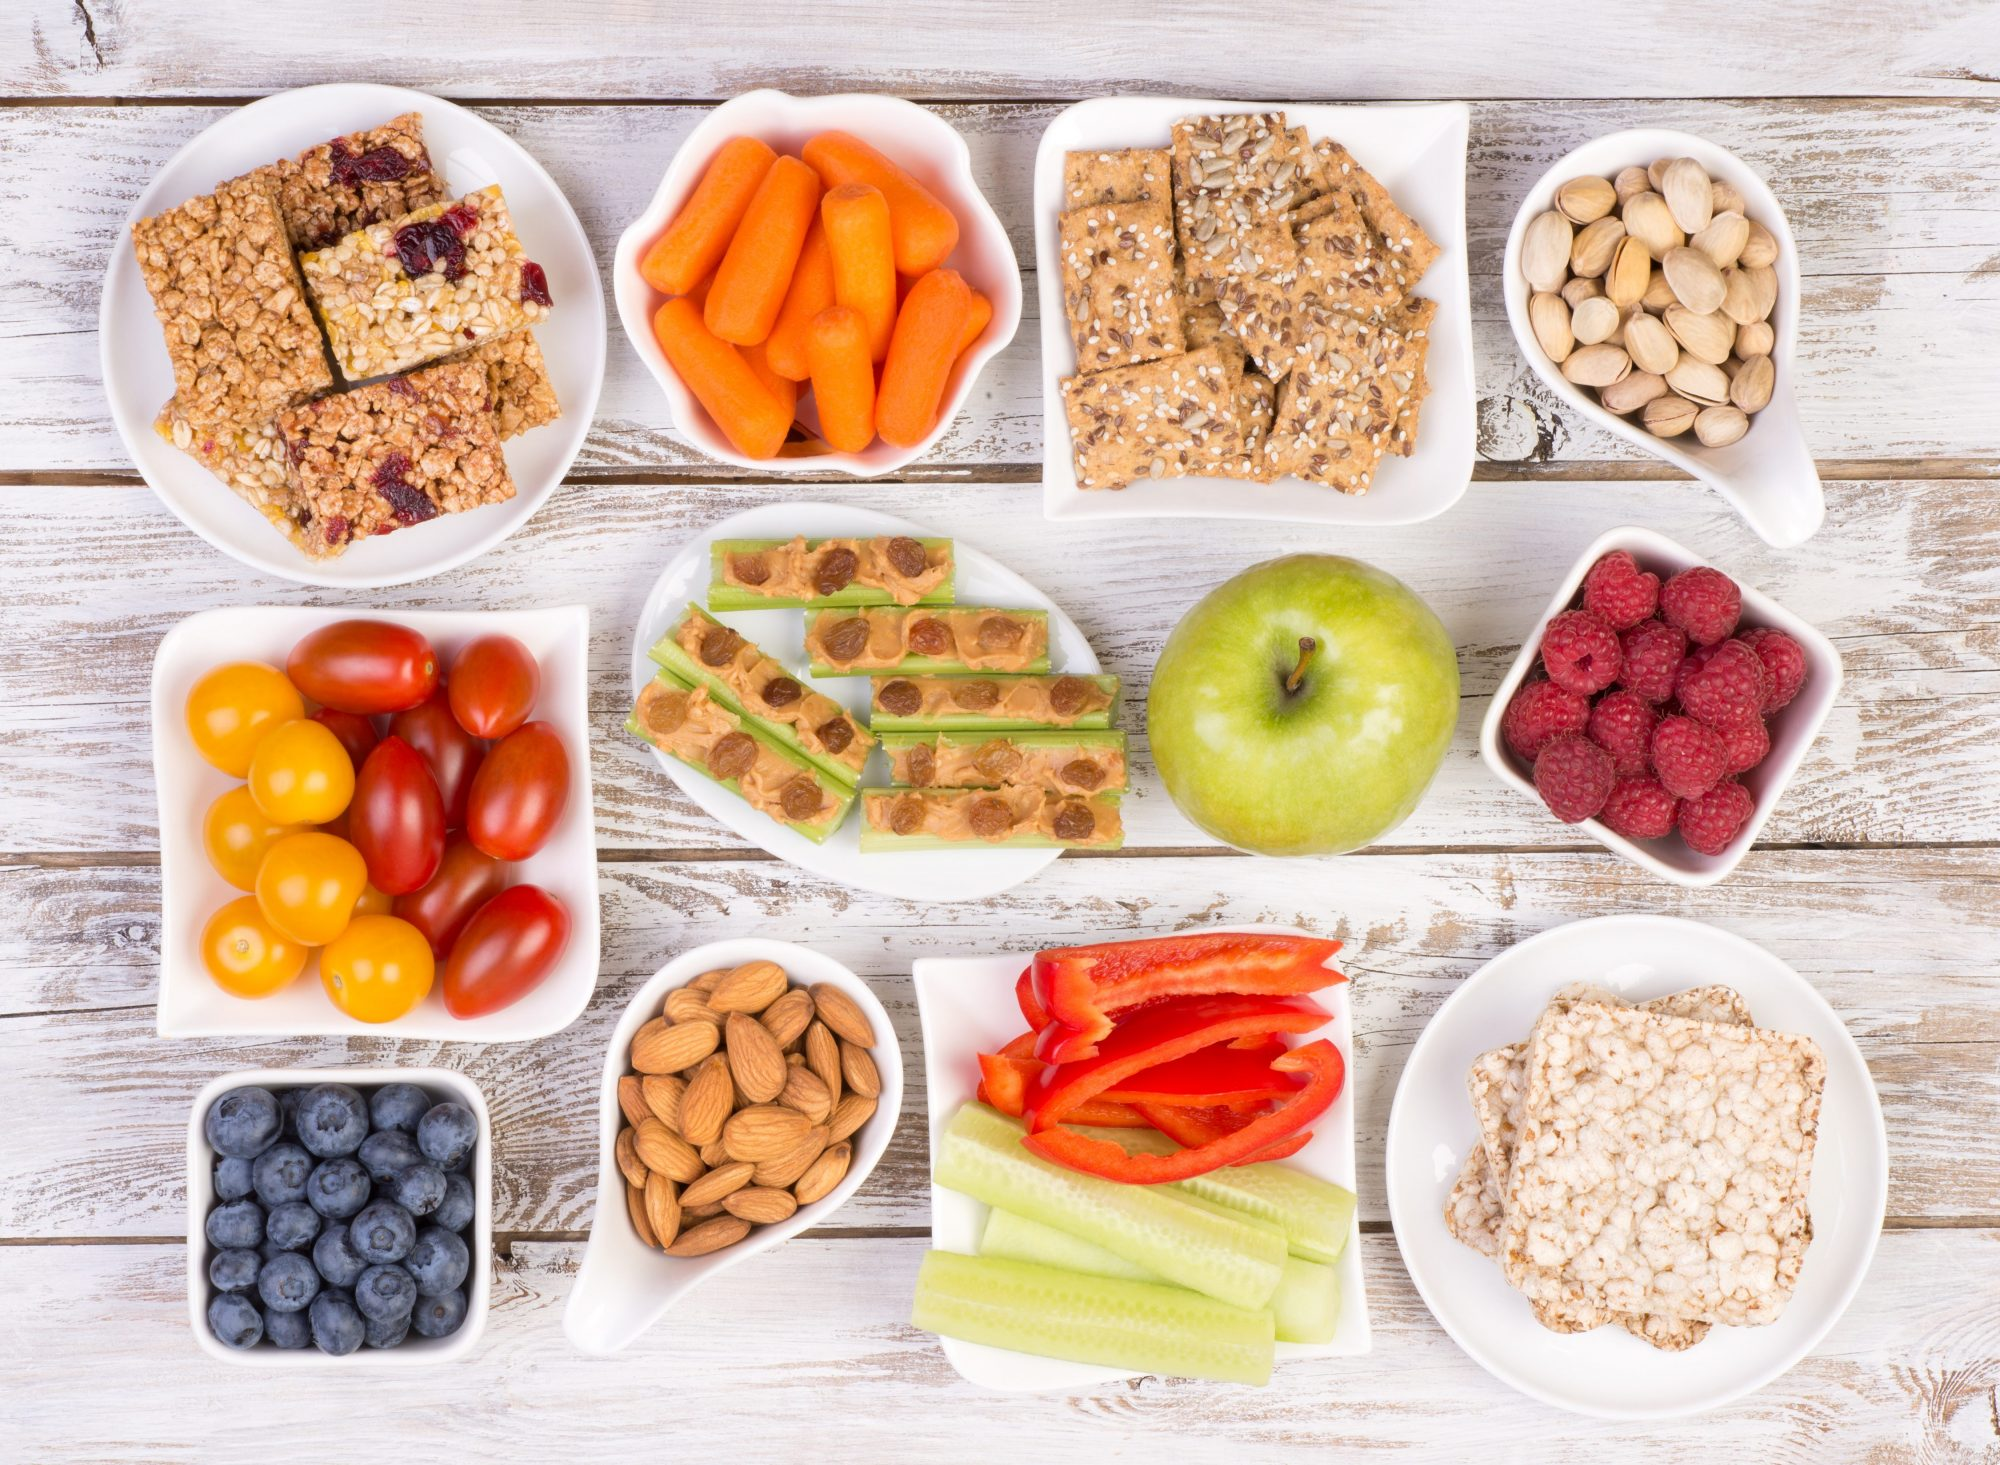 10 Tips to Healthy and Simple Snacks for Kids and Adults